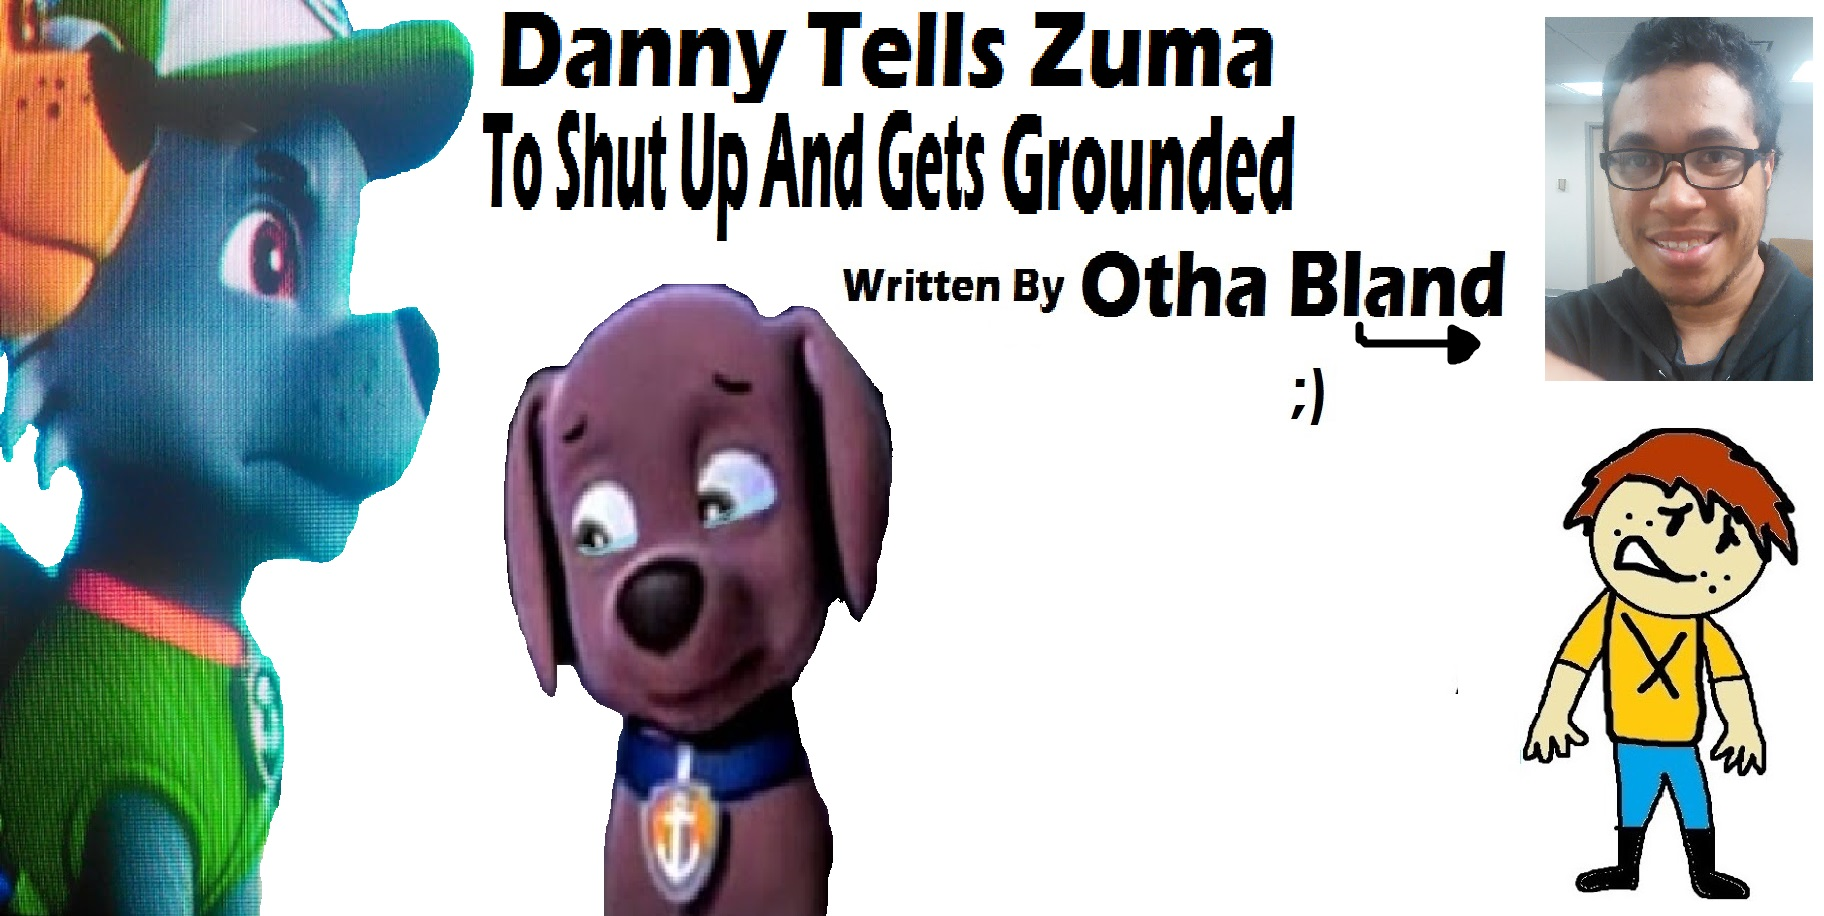 Danny Tells Zuma To Shut Up And Gets Grounded